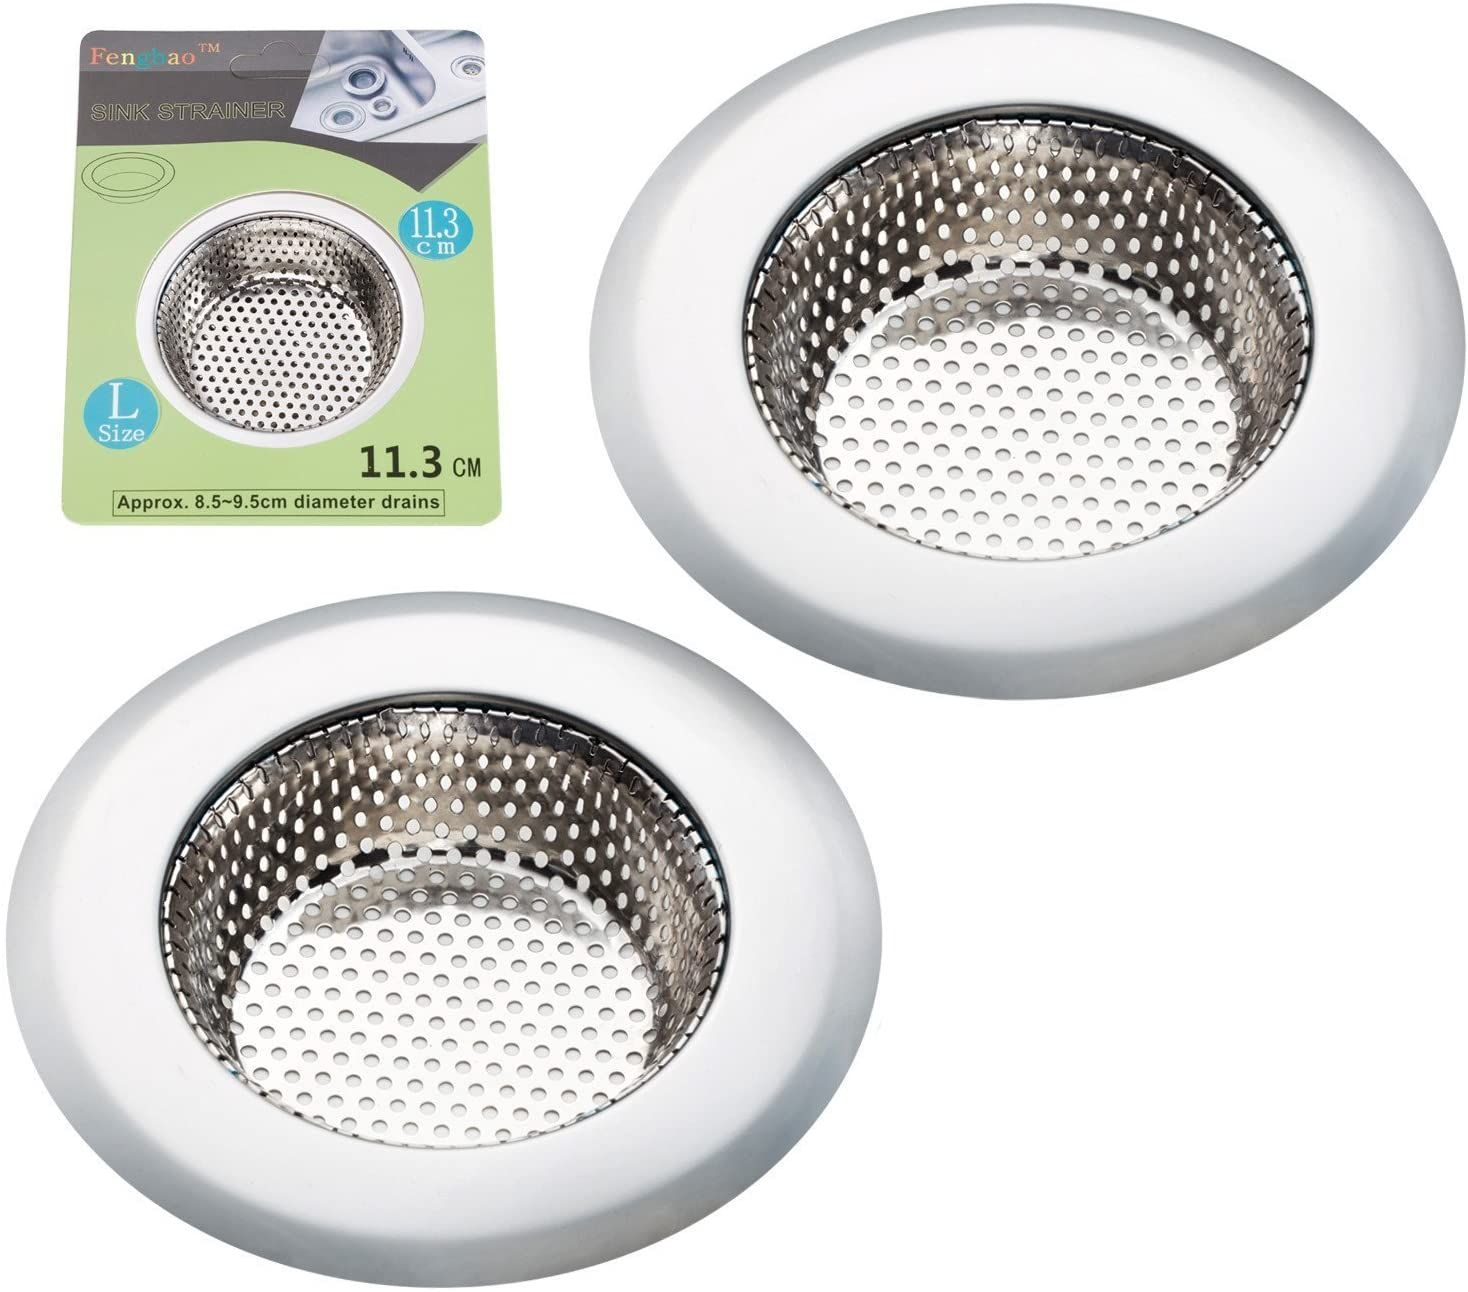 Price 8 49 Top Fengbao 2pcs Kitchen Sink Strainer Stainless Steel Large Wide Rim 4 5 Diameter In 2020 Kitchen Sink Strainer Sink Strainer Sink Strainers